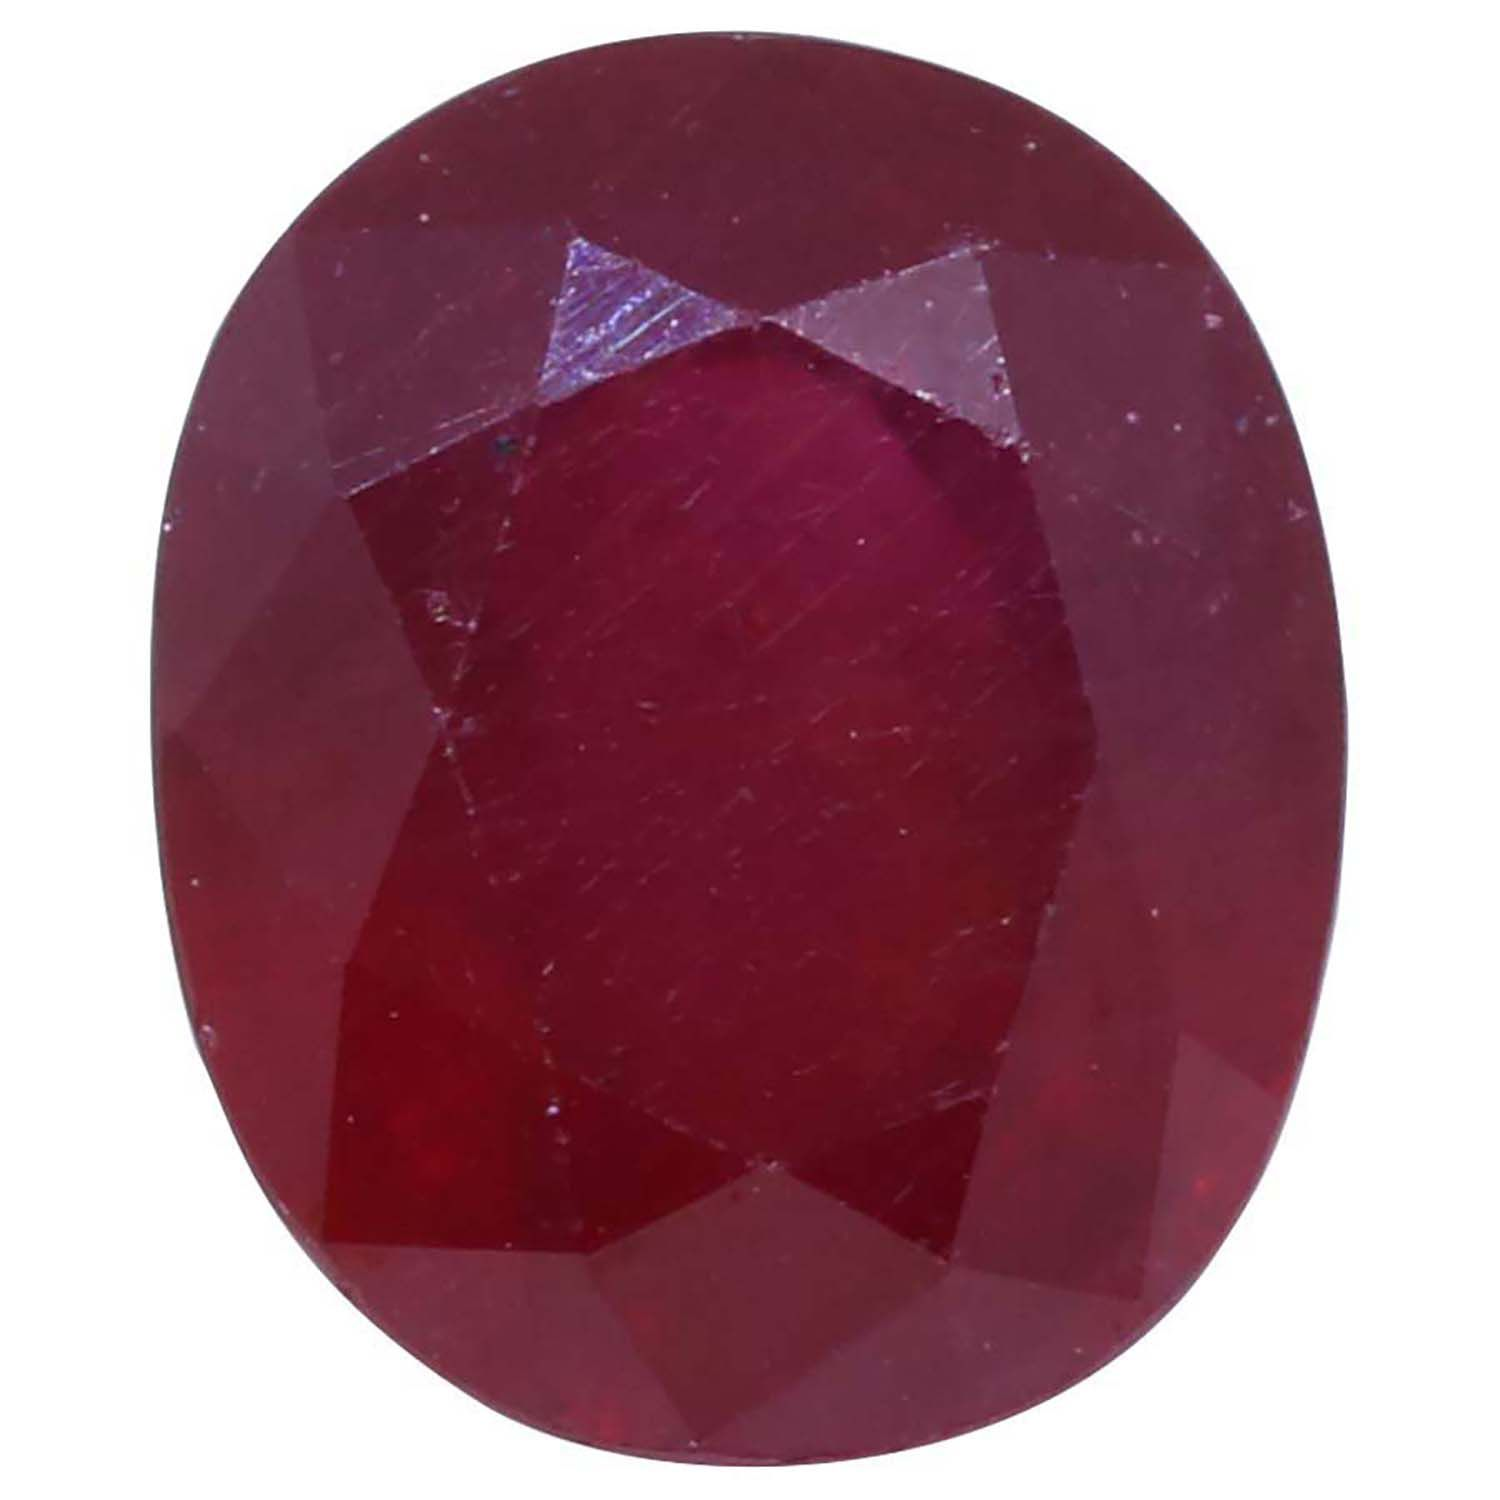 ring diamond untreated and colored image gemstones m s carats ruby estate gemstone rau jewelry